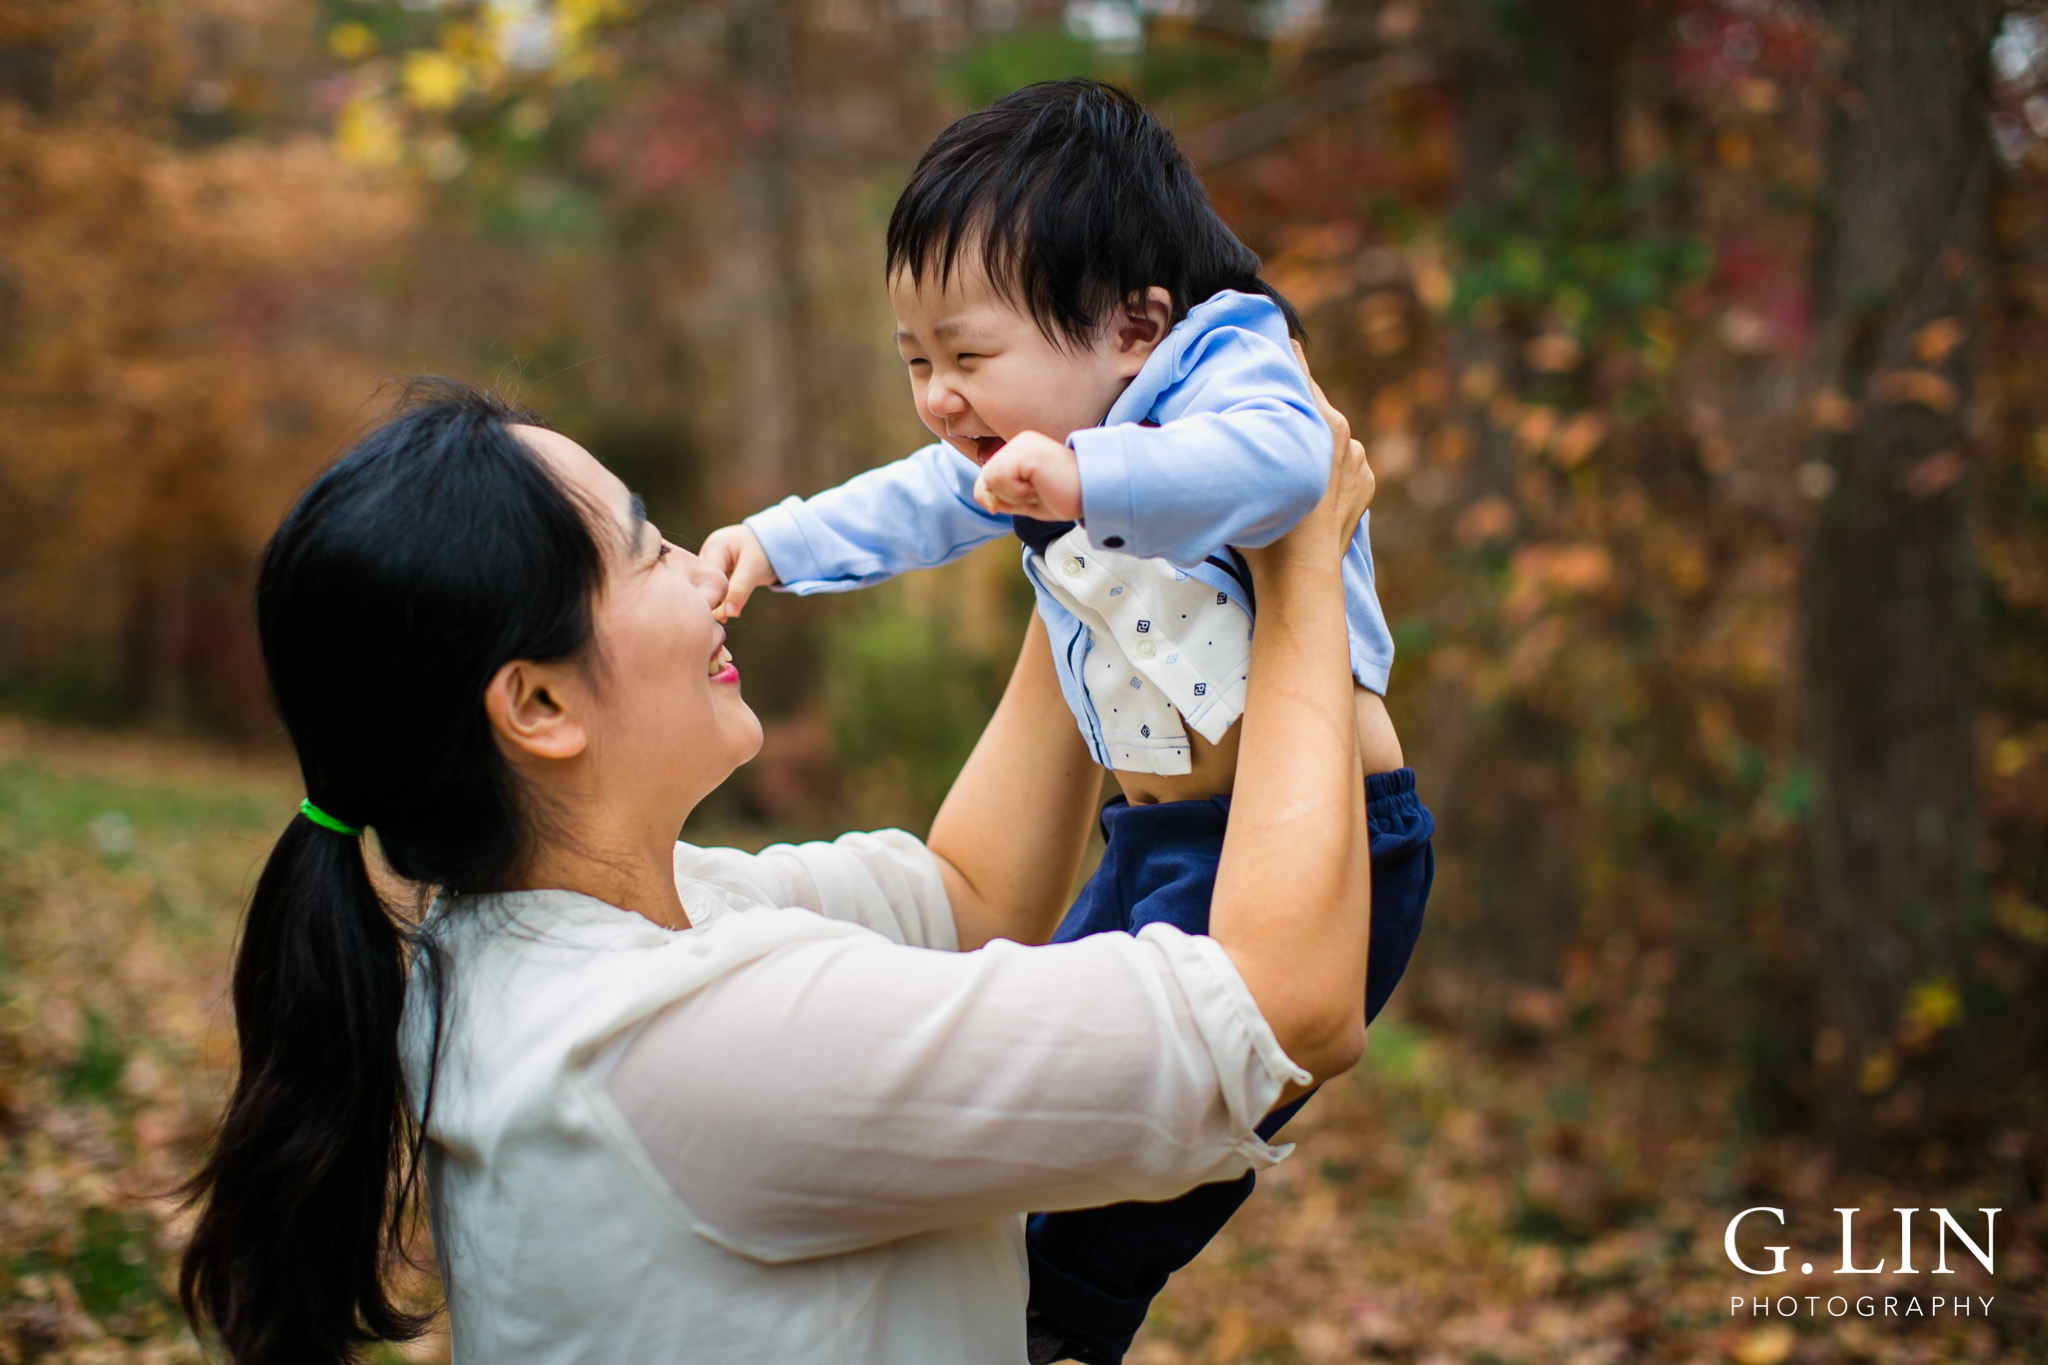 Durham Family Photographer   Mom playing with baby boy outside   By G. Lin Photography